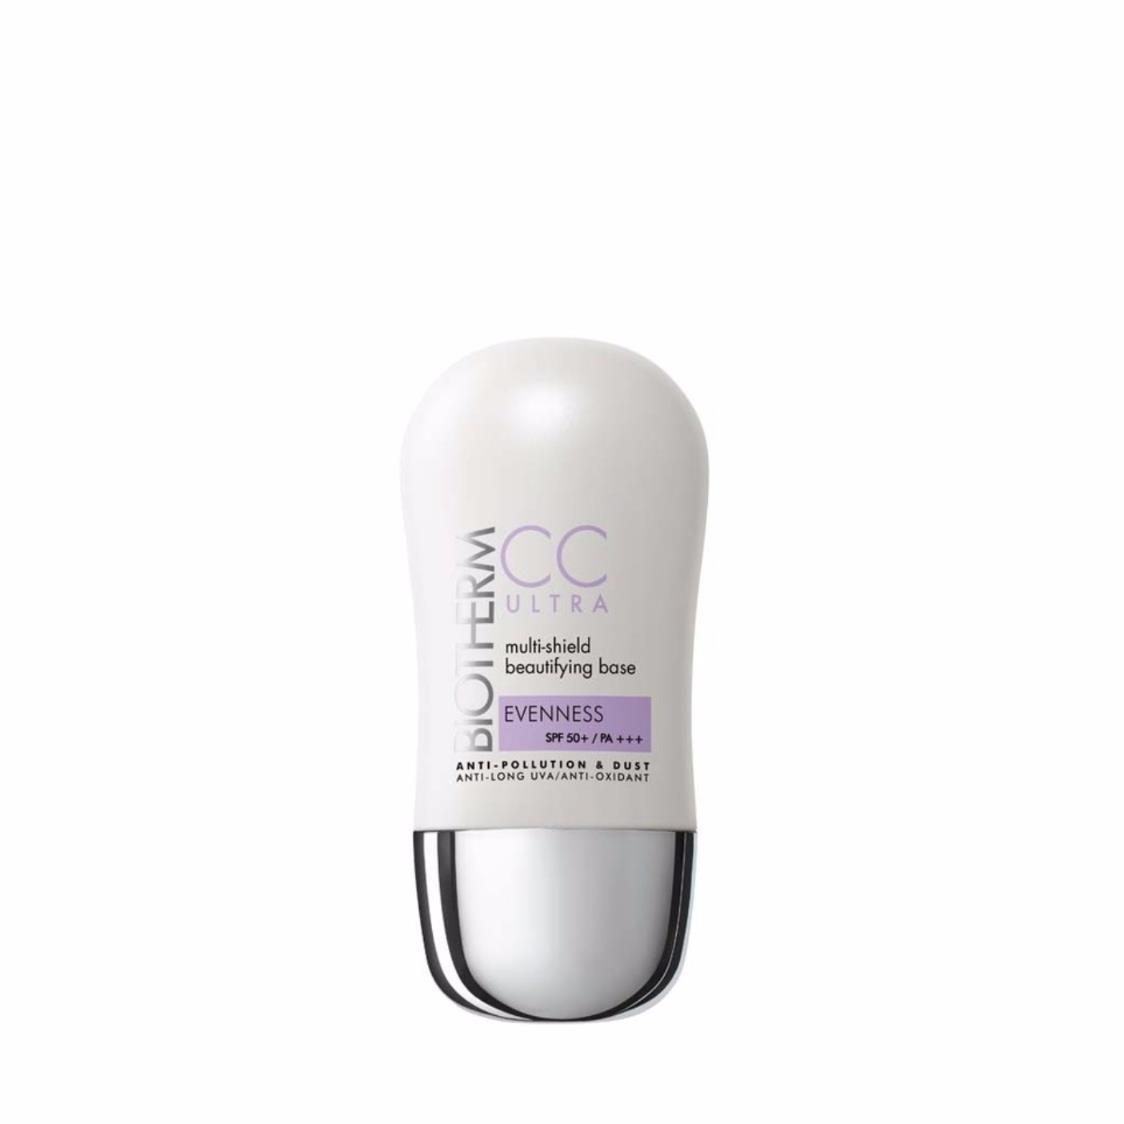 CC Ultra Evenness 30ml